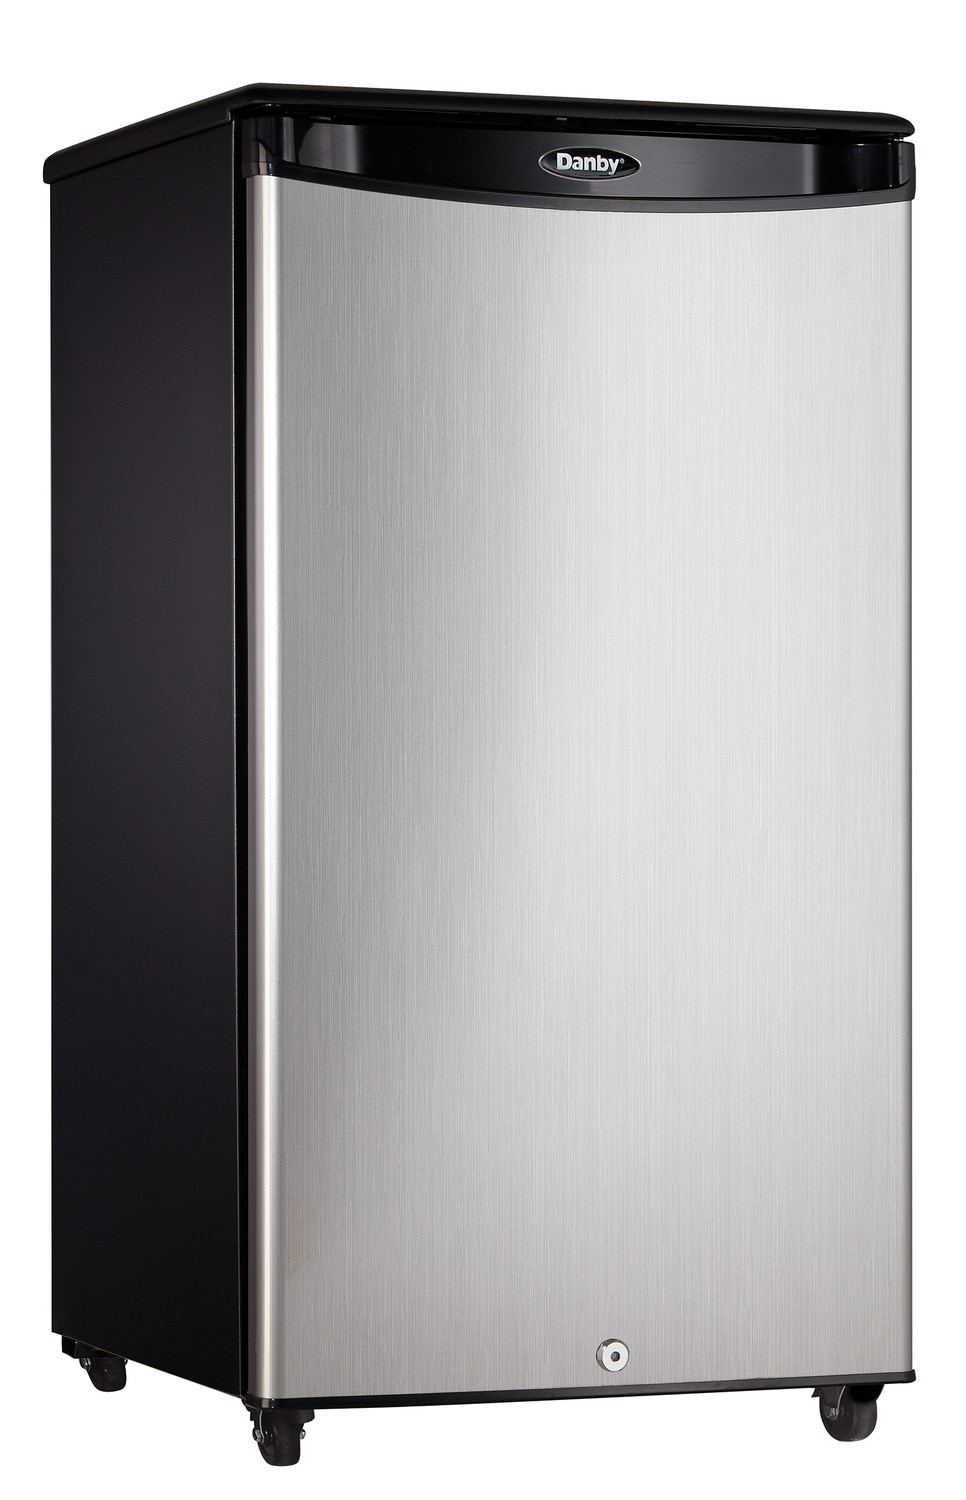 Danby Stainless Steel Outdoor Compact Refrigerator (3.3 Cu